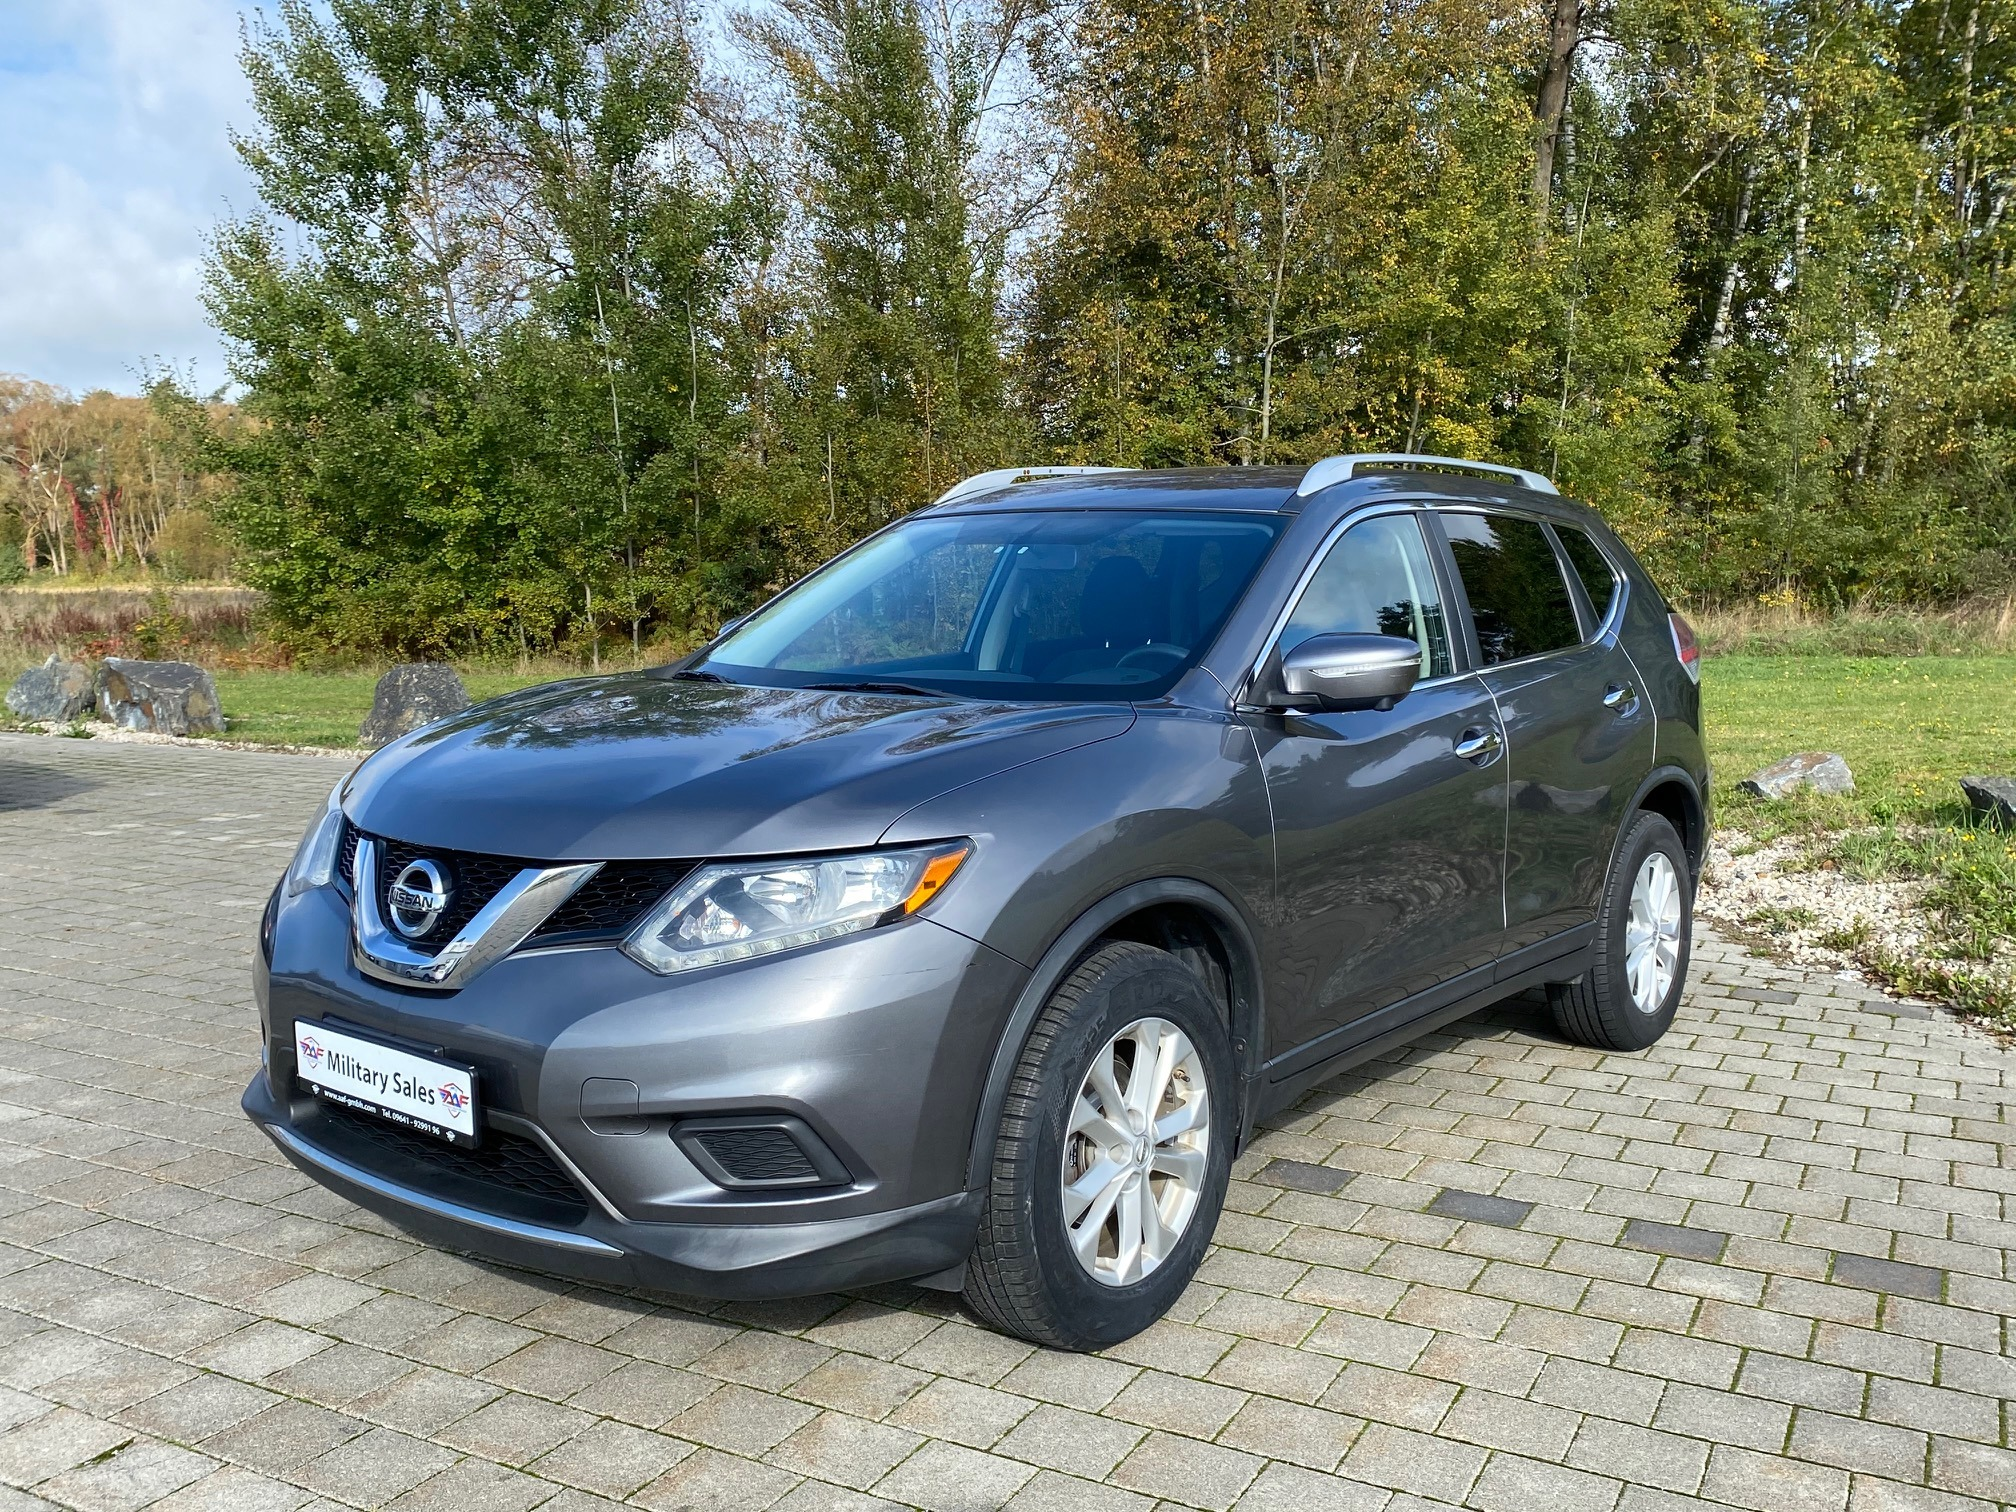 *New Arrival* </br>2015 Nissan Rogue SL</br>as low as </br>$129 per paycheck